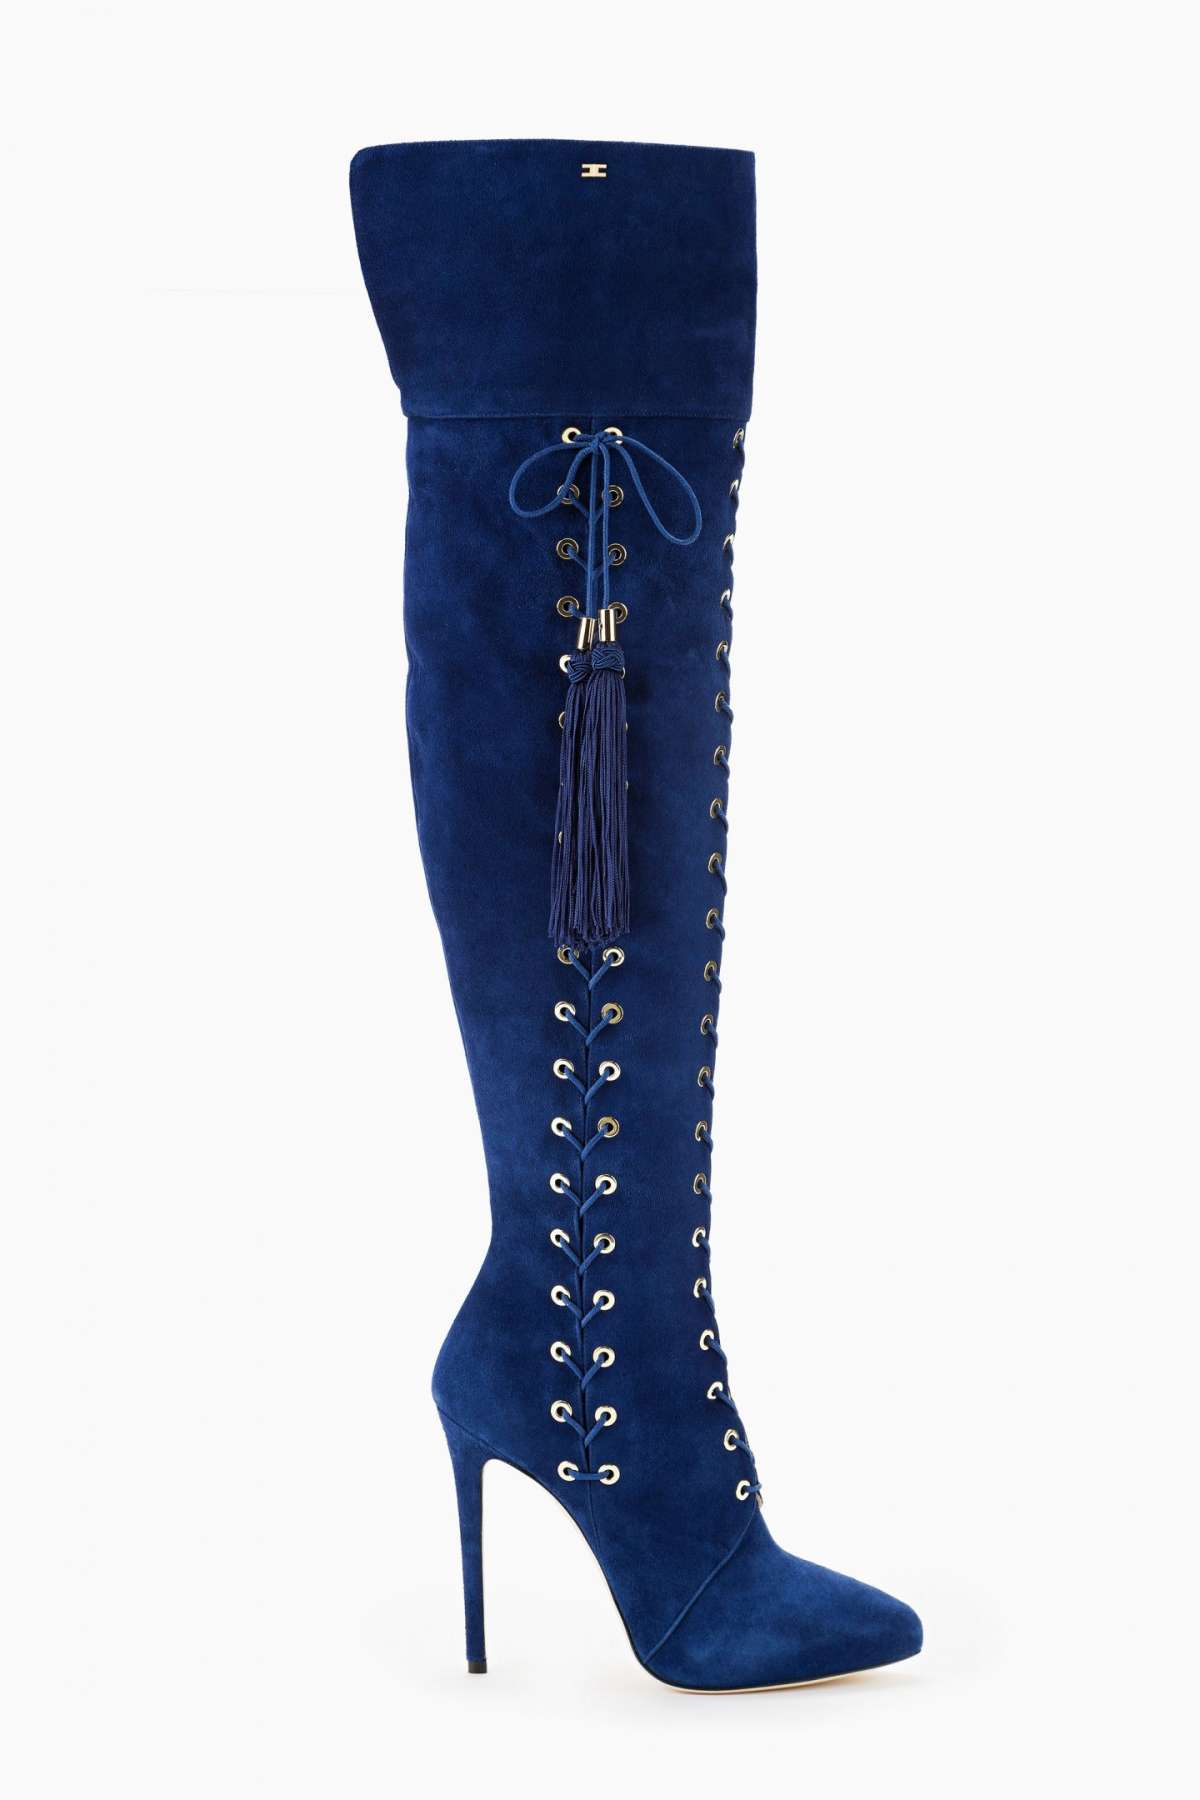 Cuissardes lace up blu con tacco